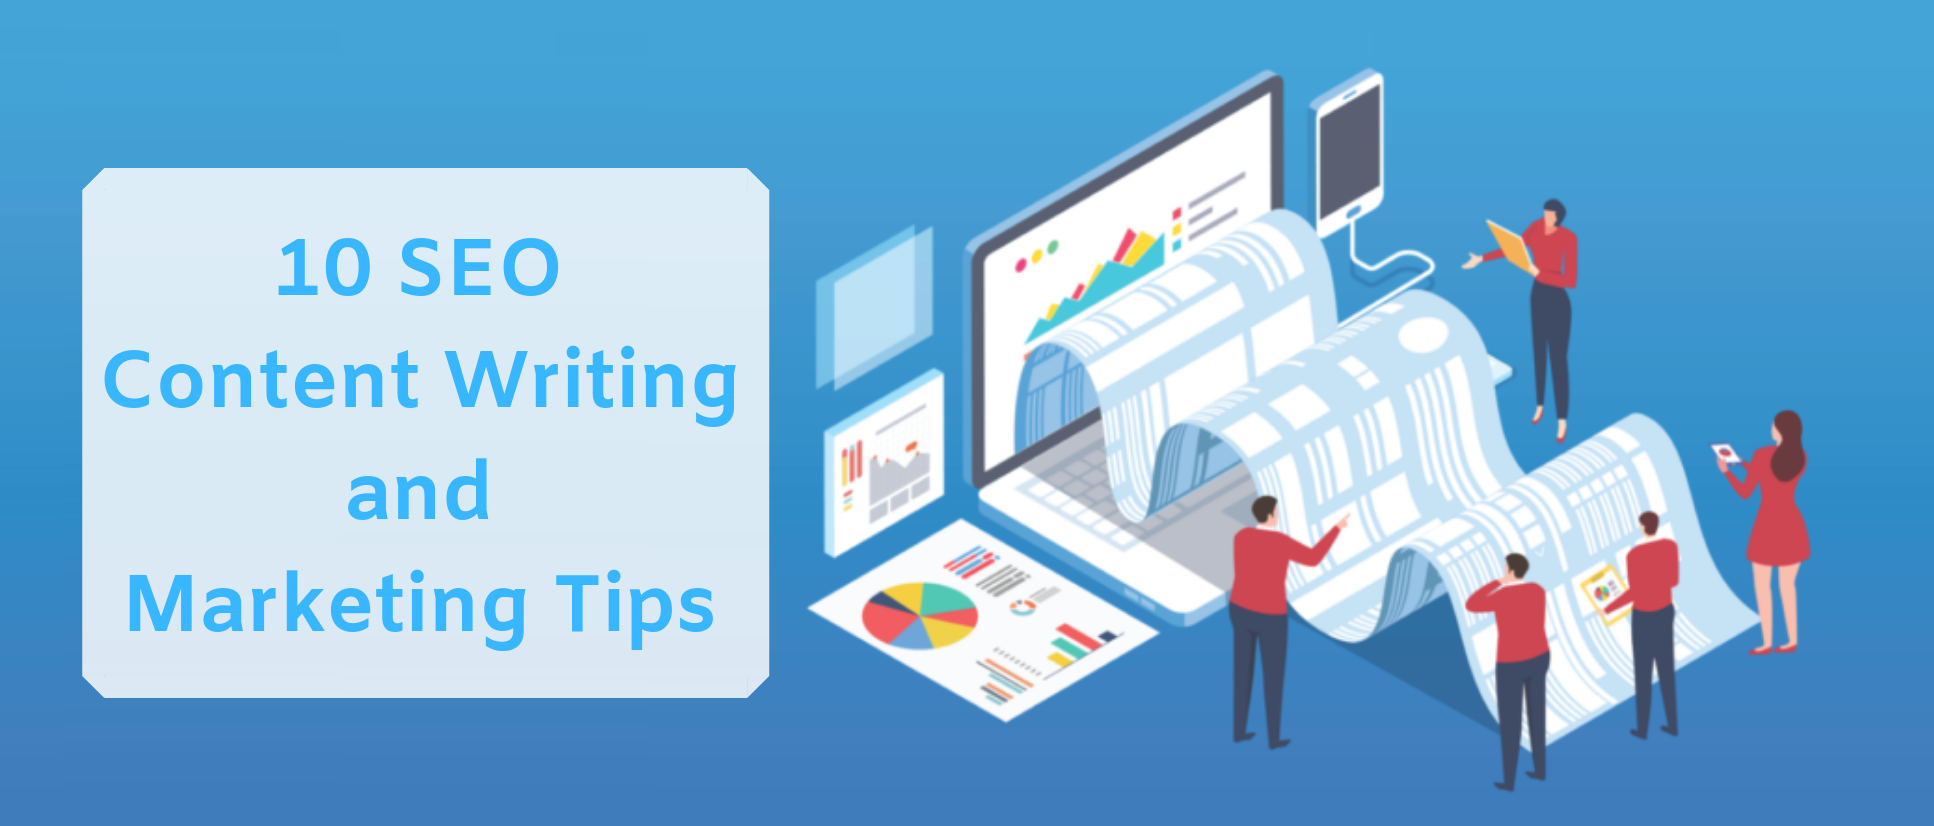 10 SEO Content Writing and Marketing Tips You Must Know